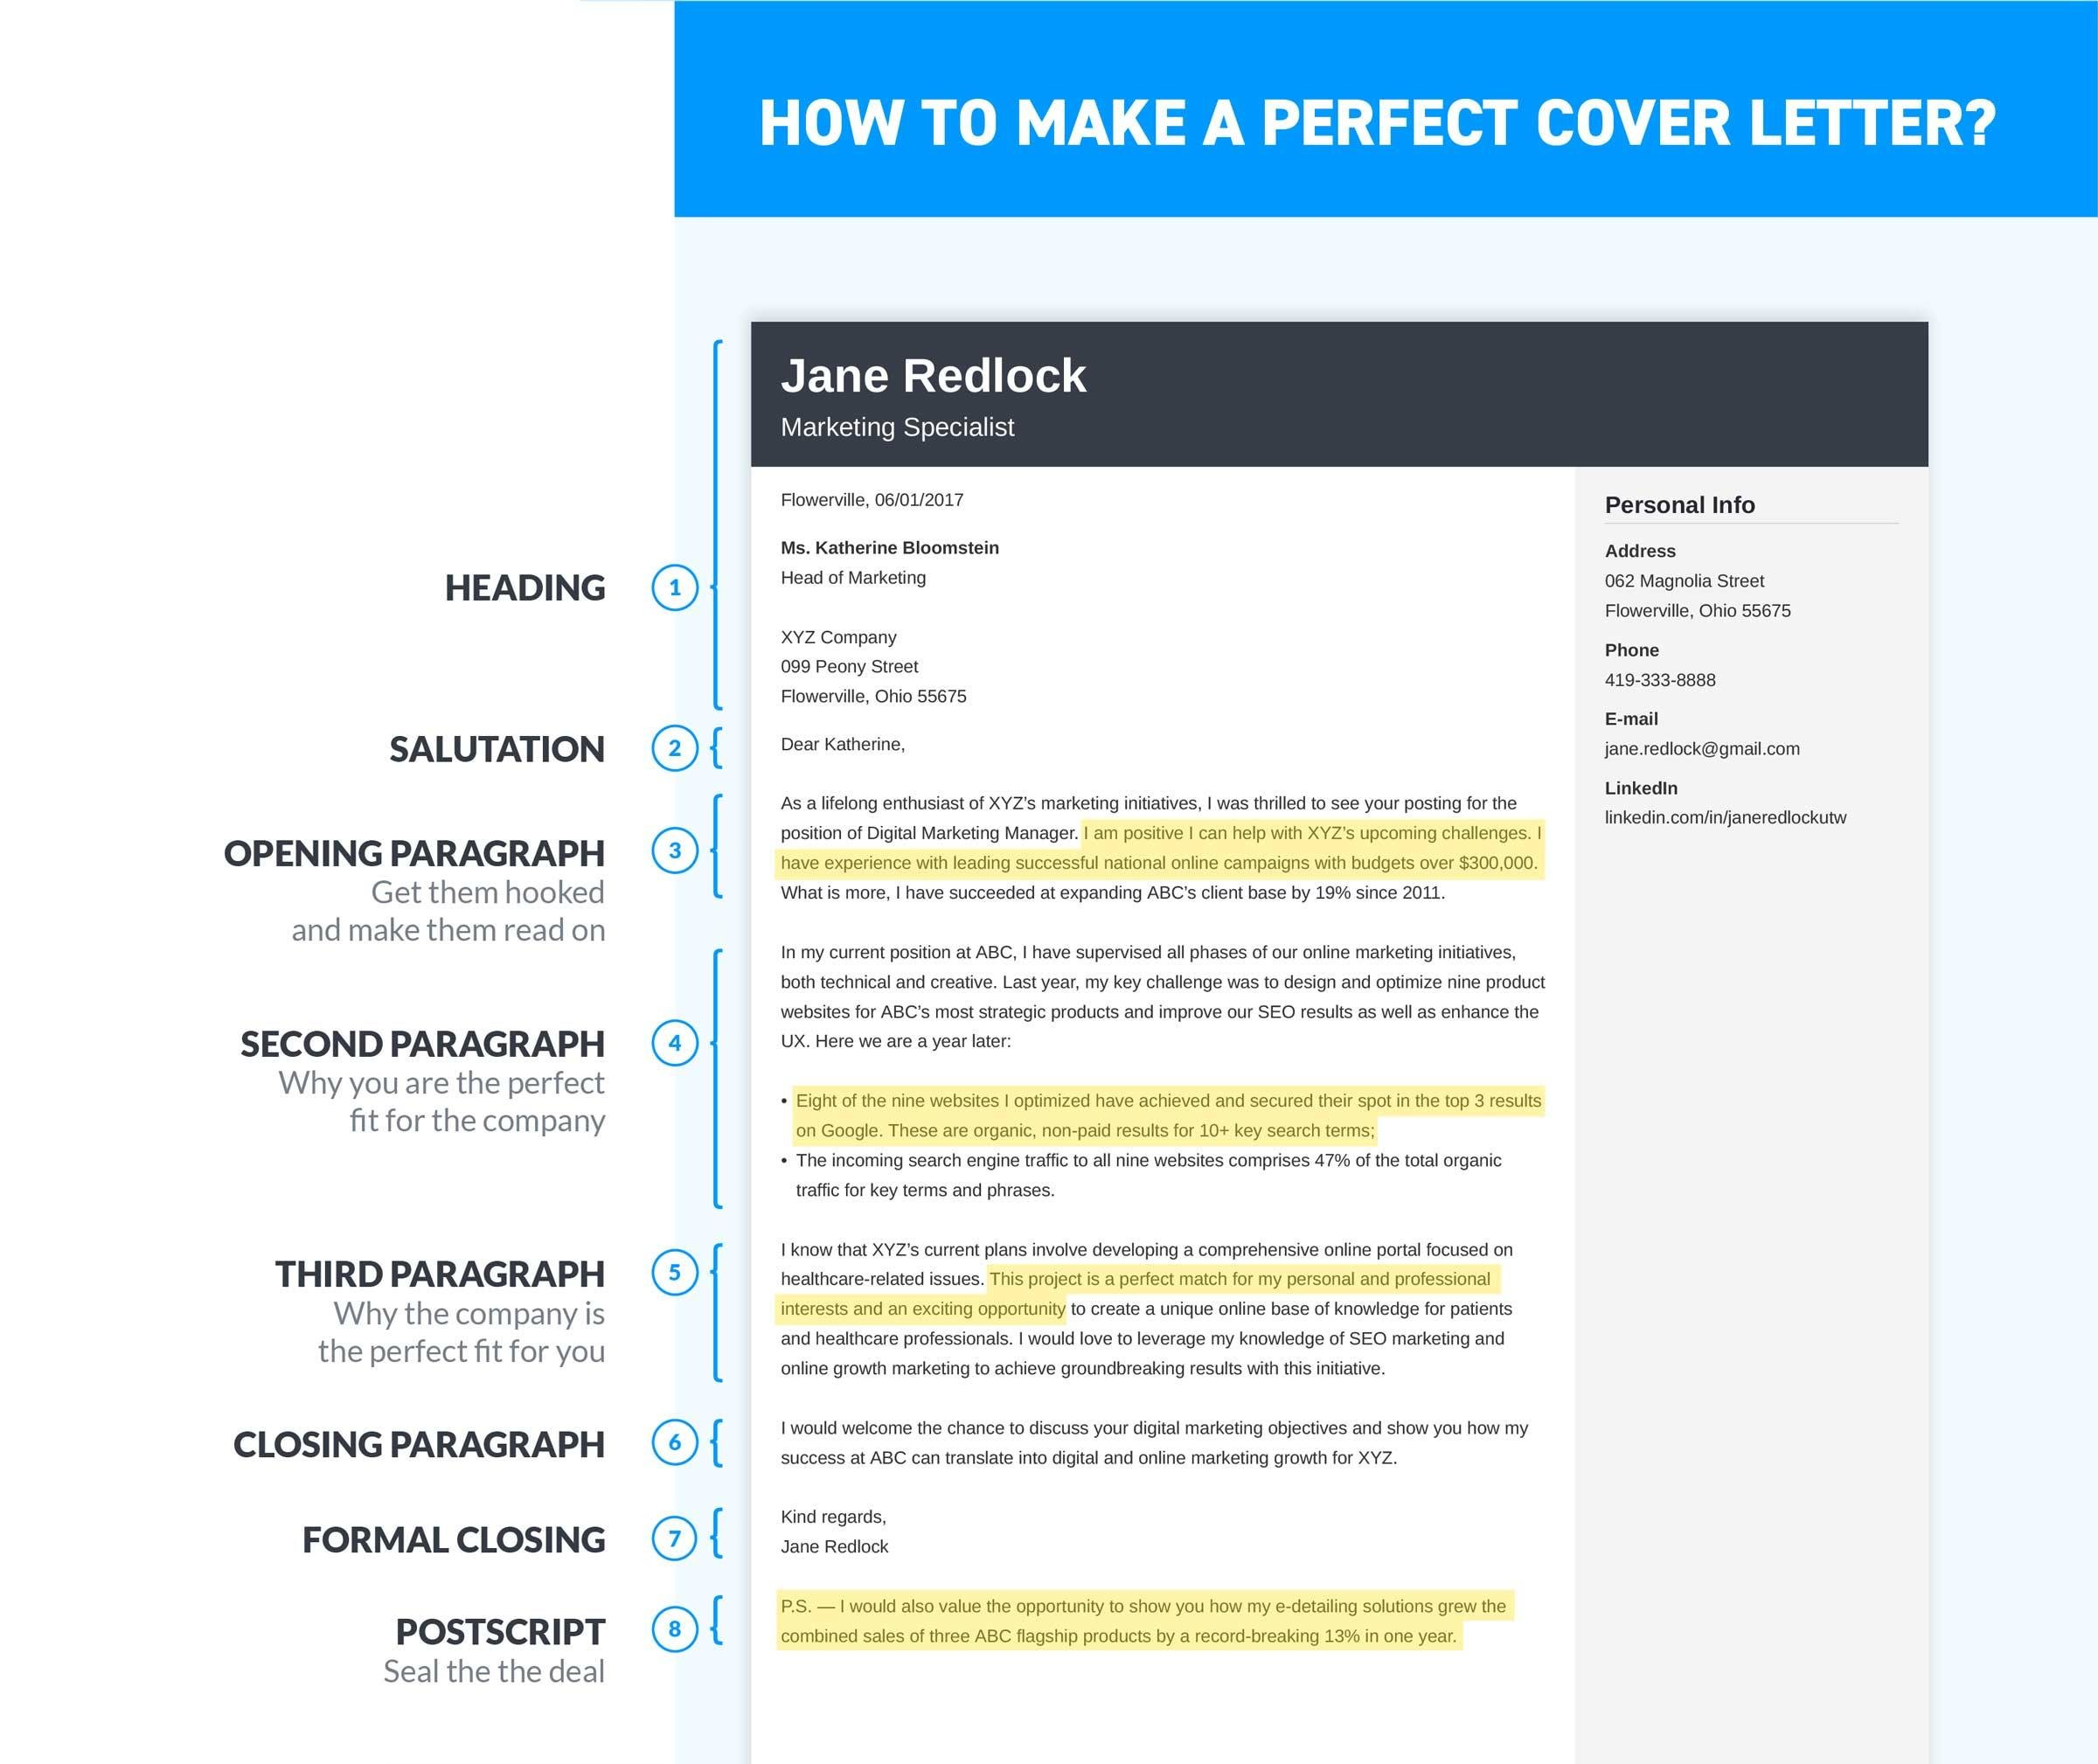 How to Write a Cover Letter: 10+ Examples, Tips & Templates ...